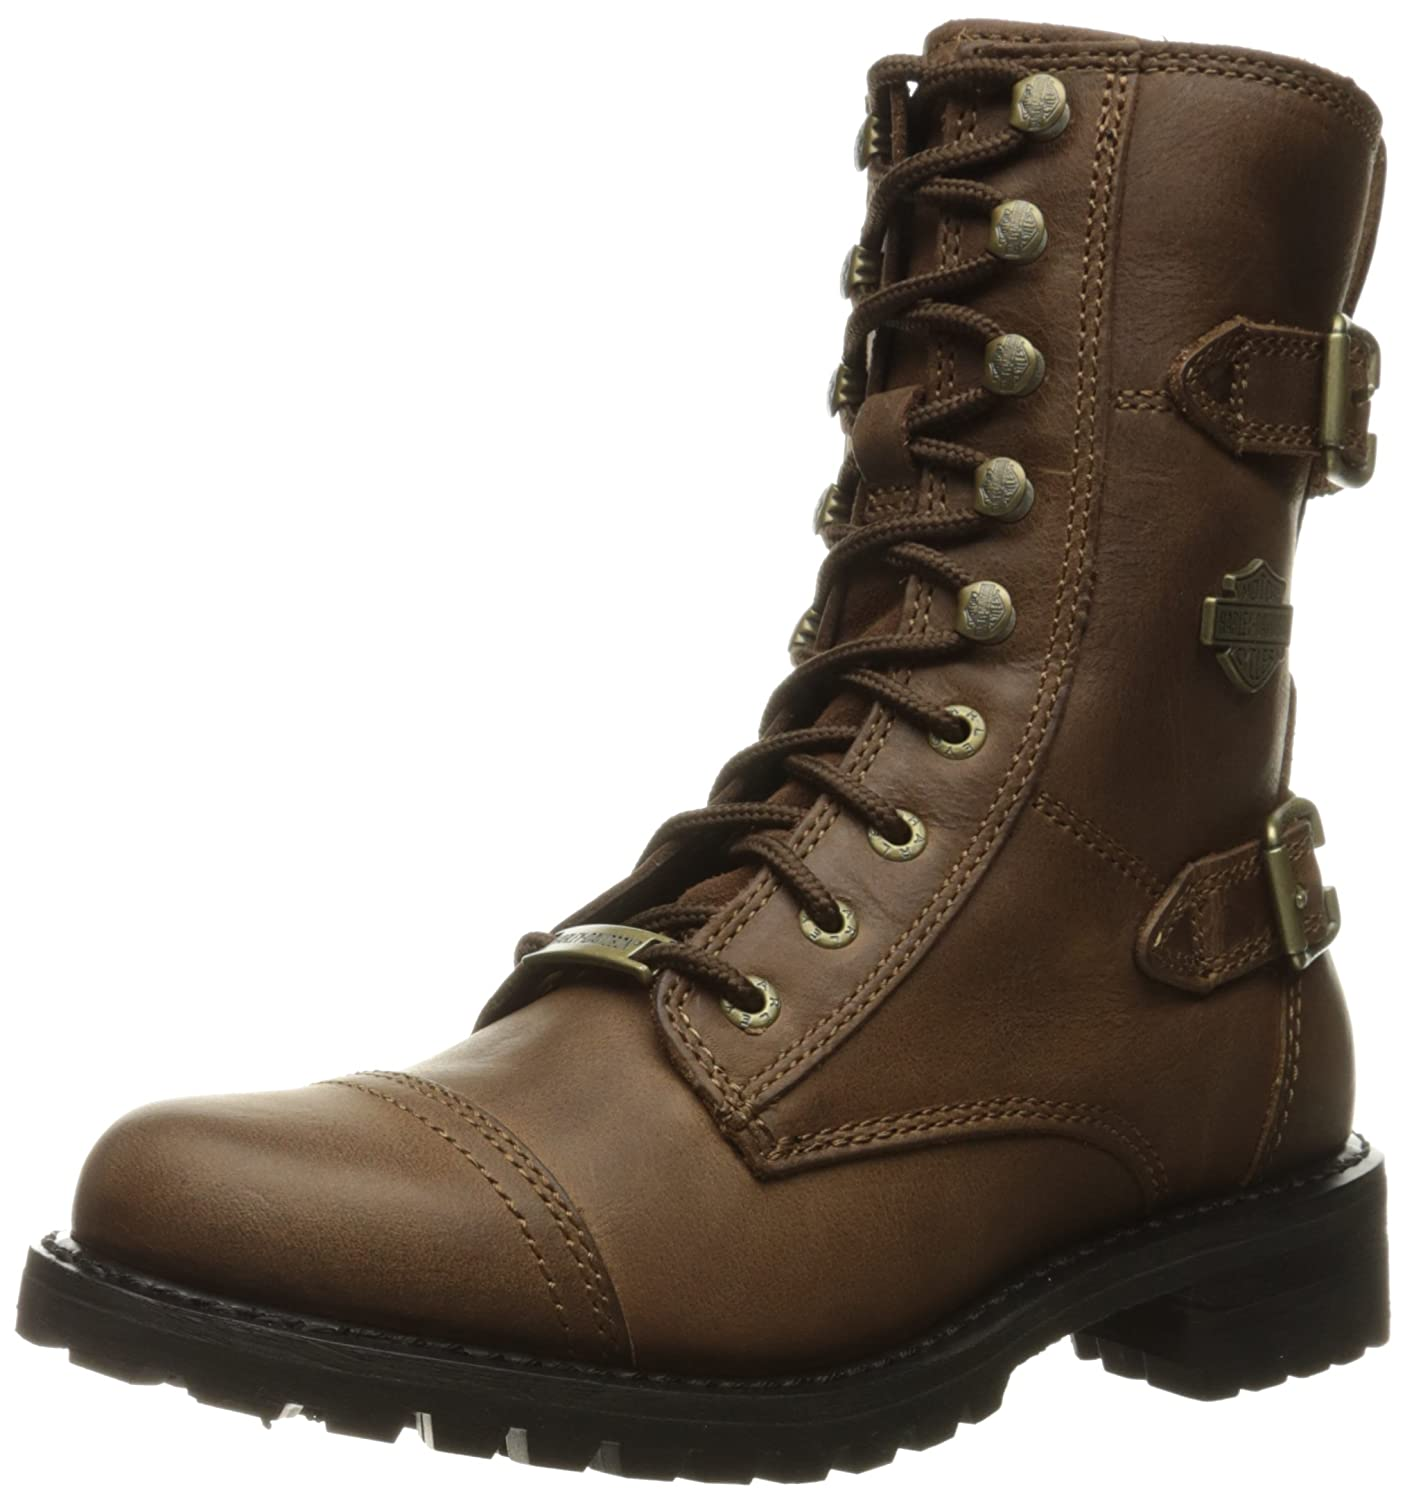 Harley-Davidson Women's Balsa Work Boot B005BFRWWS 5 B(M) US|Brown